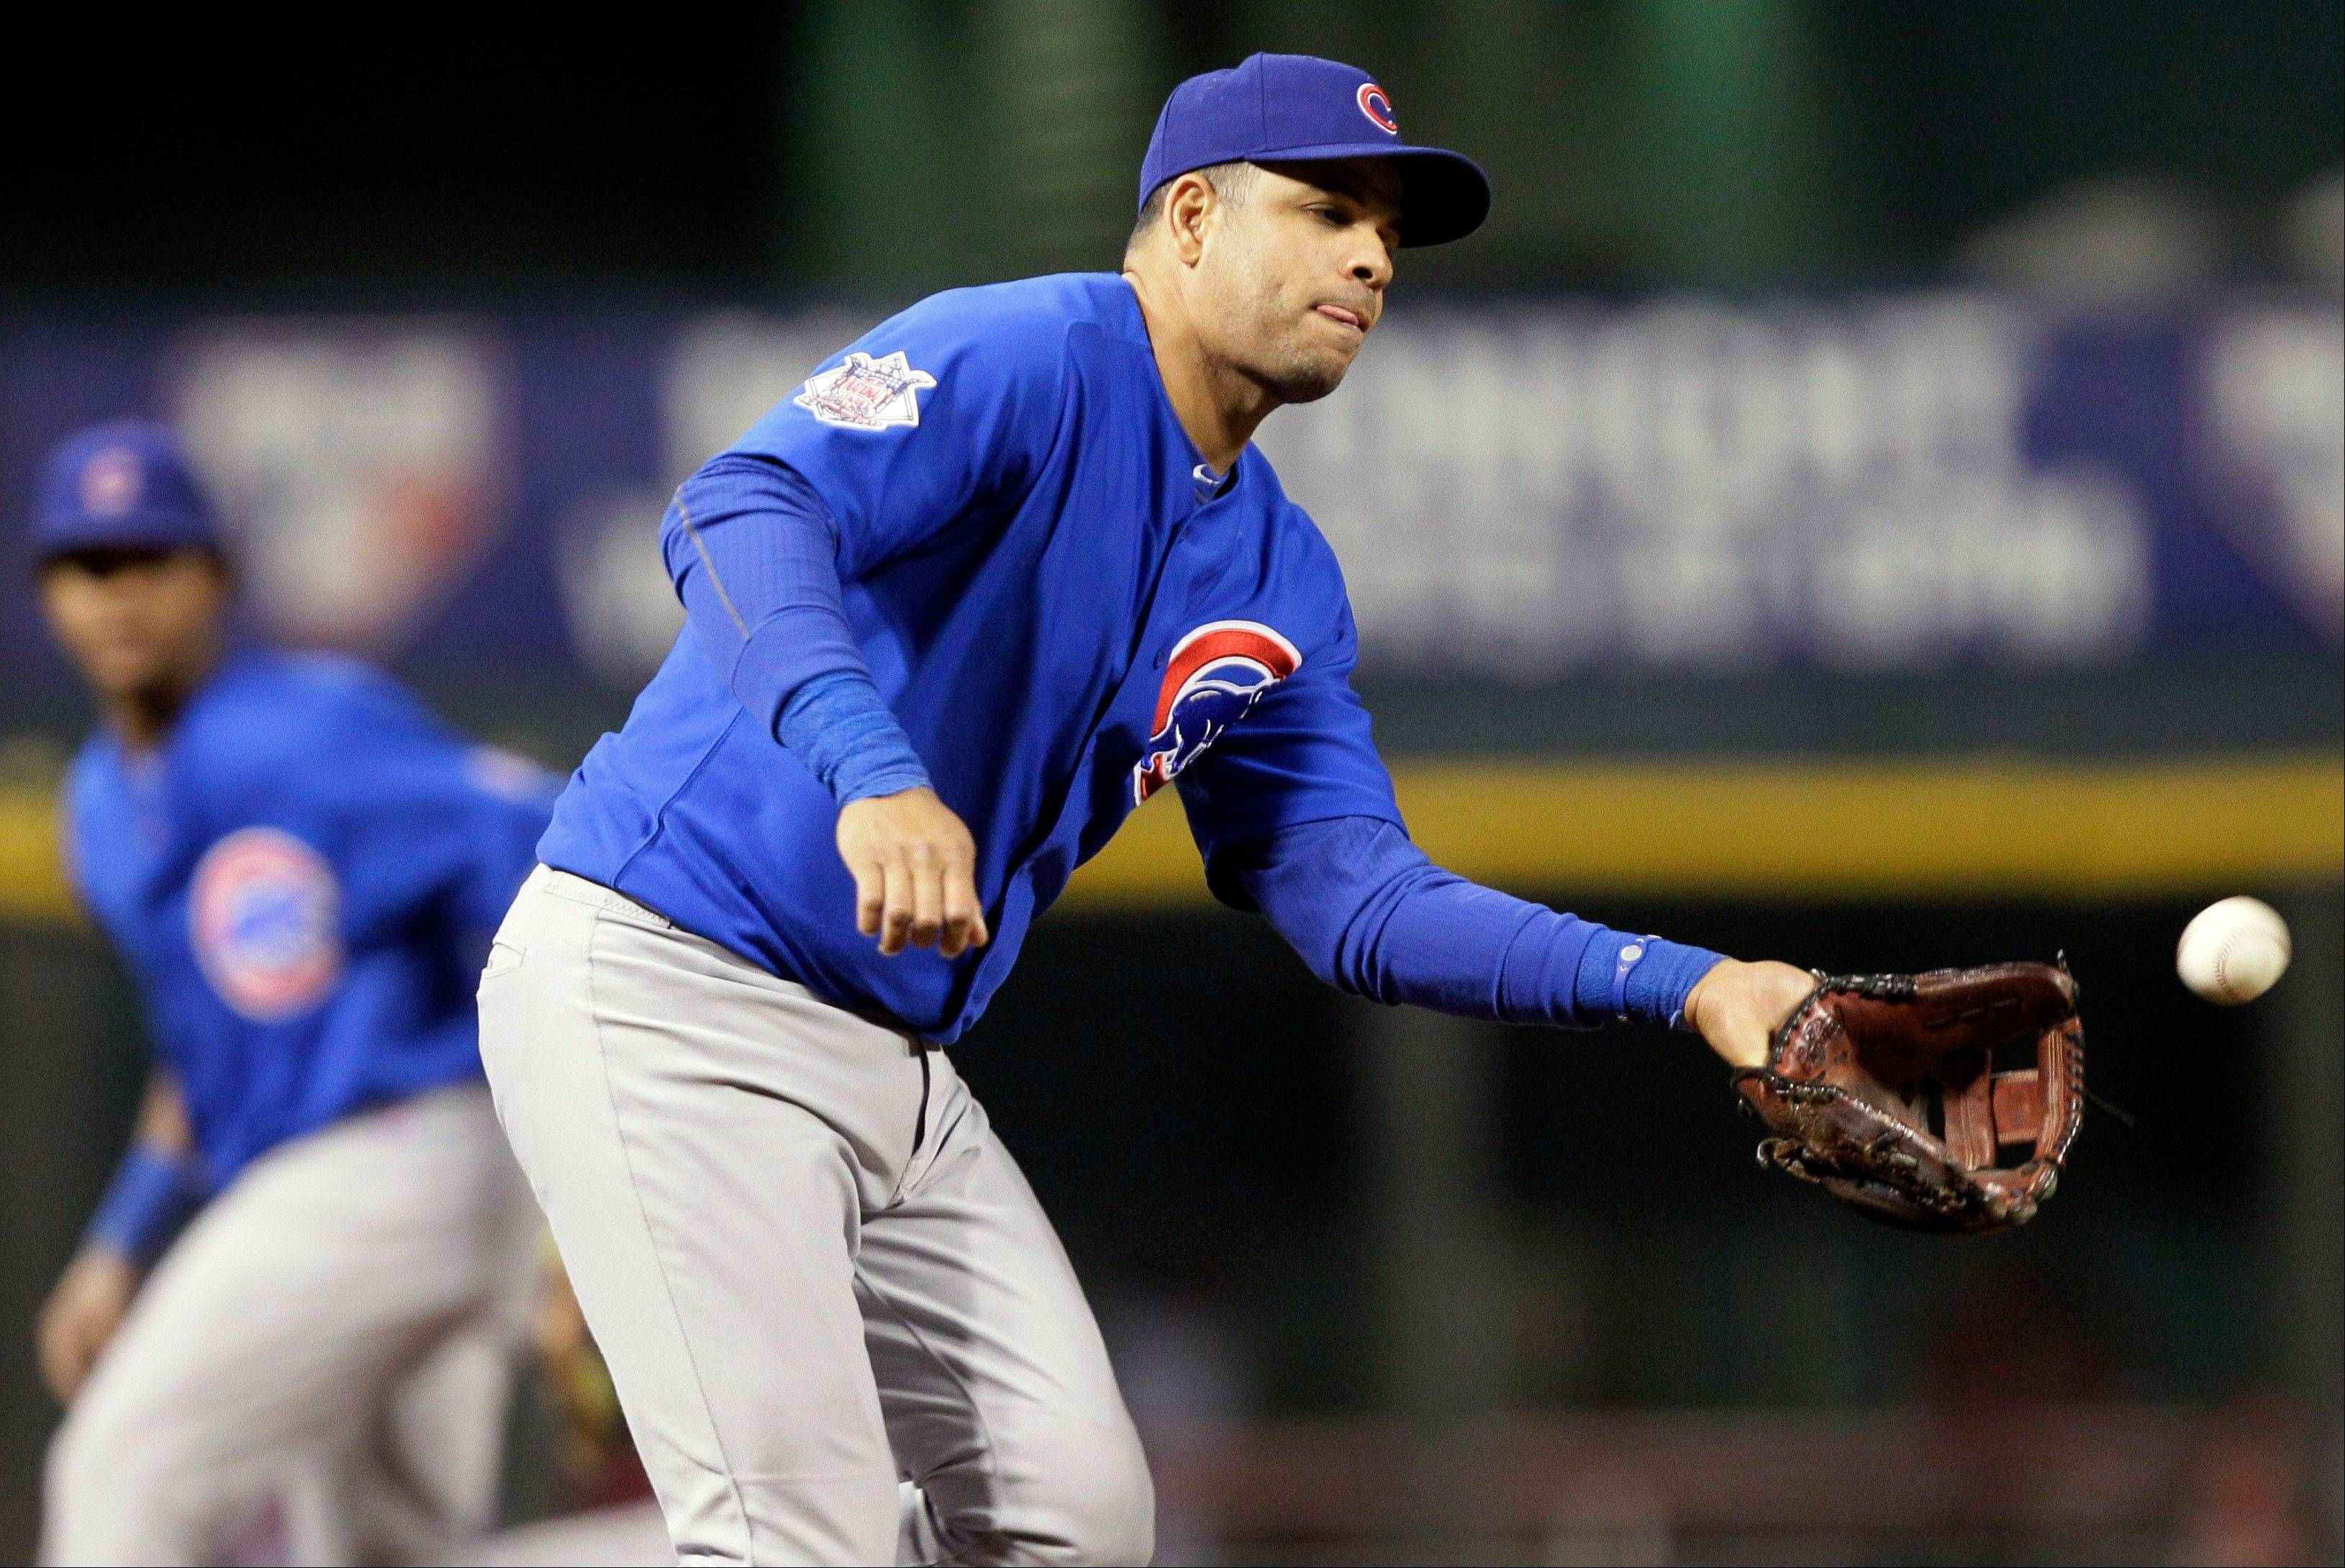 Cubs third baseman Aramis Ramirez fields a ground ball hit by Cincinnati Reds' Homer Bailey in the third inning Thursday night.